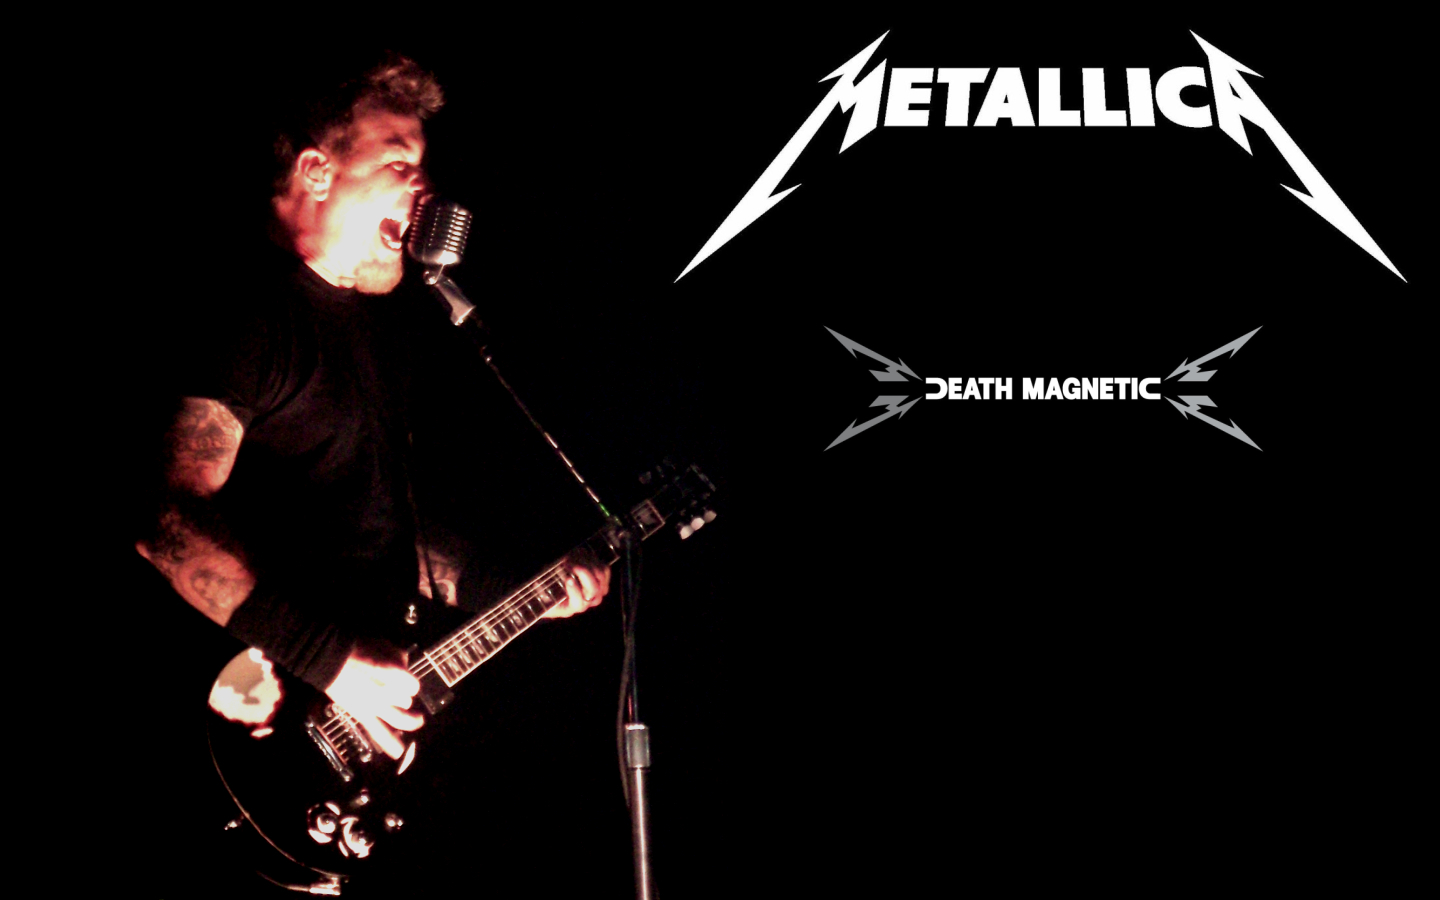 Music Metallica bands Music HD Wallpaper